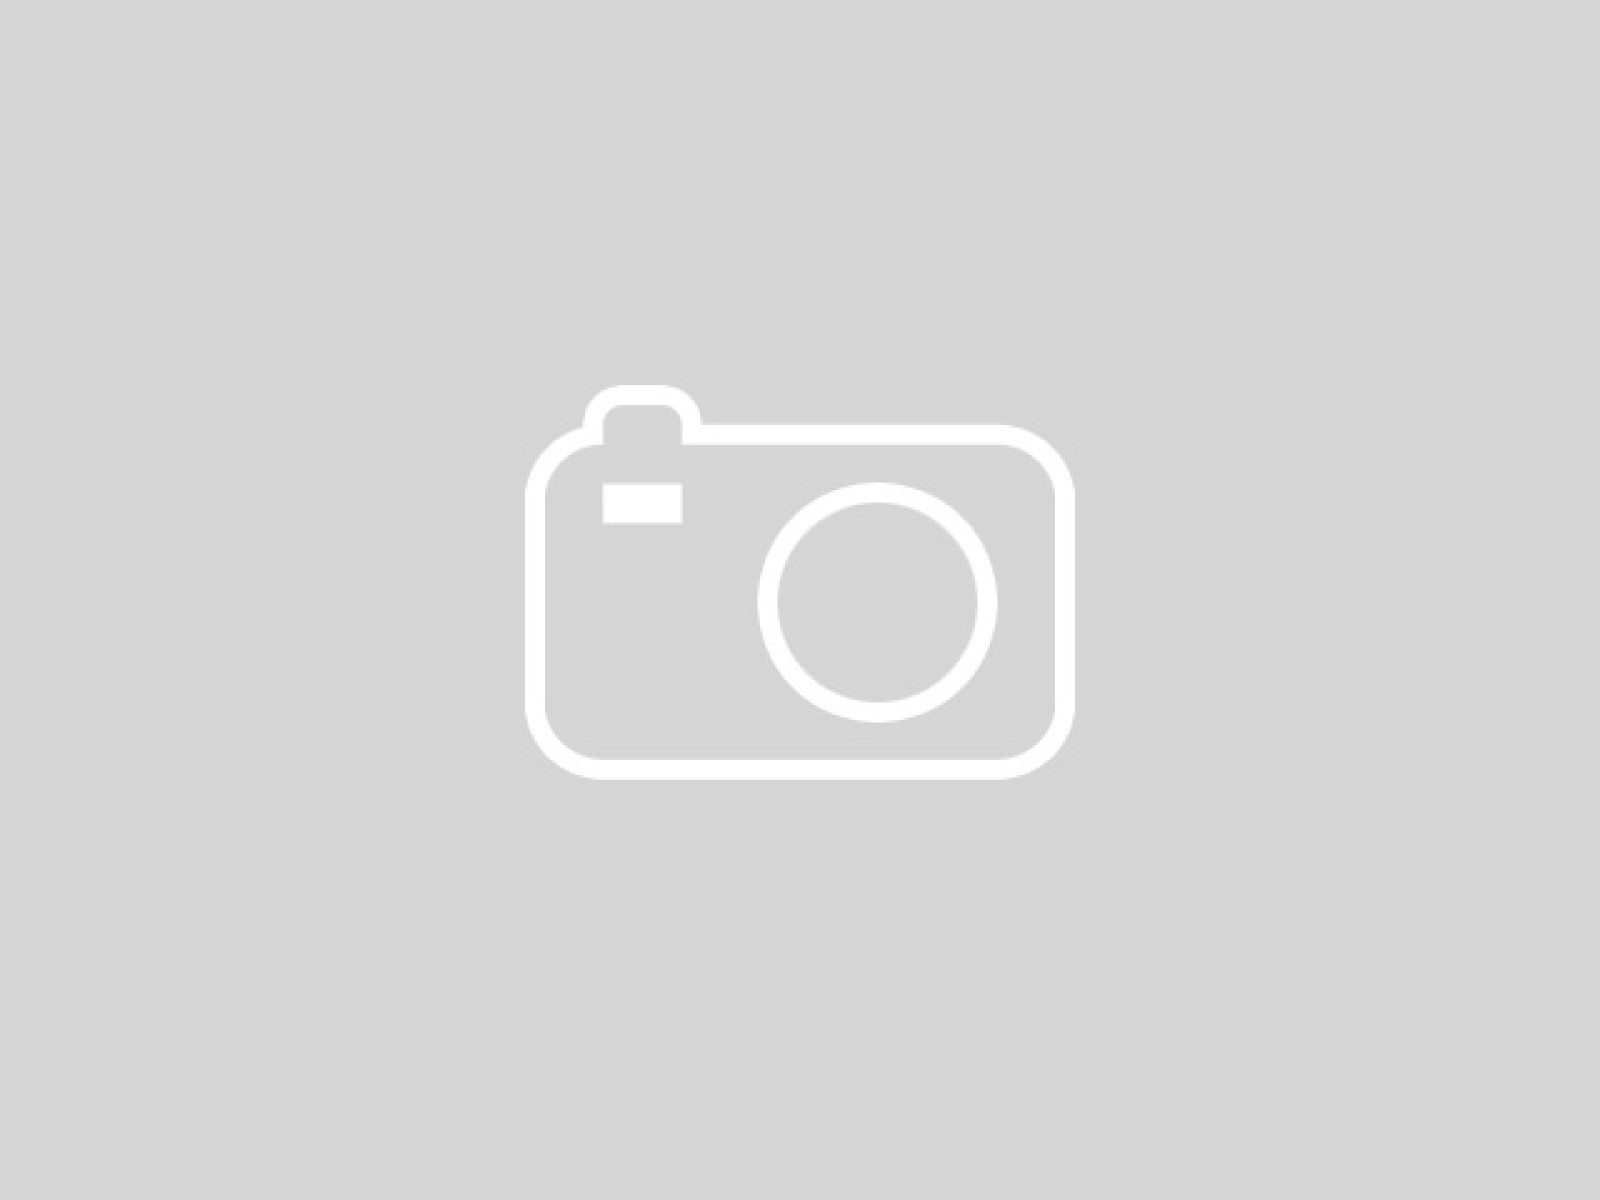 Pre-Owned 2018 Audi A4 2.0 TFSI ultra Premium S Tronic FWD